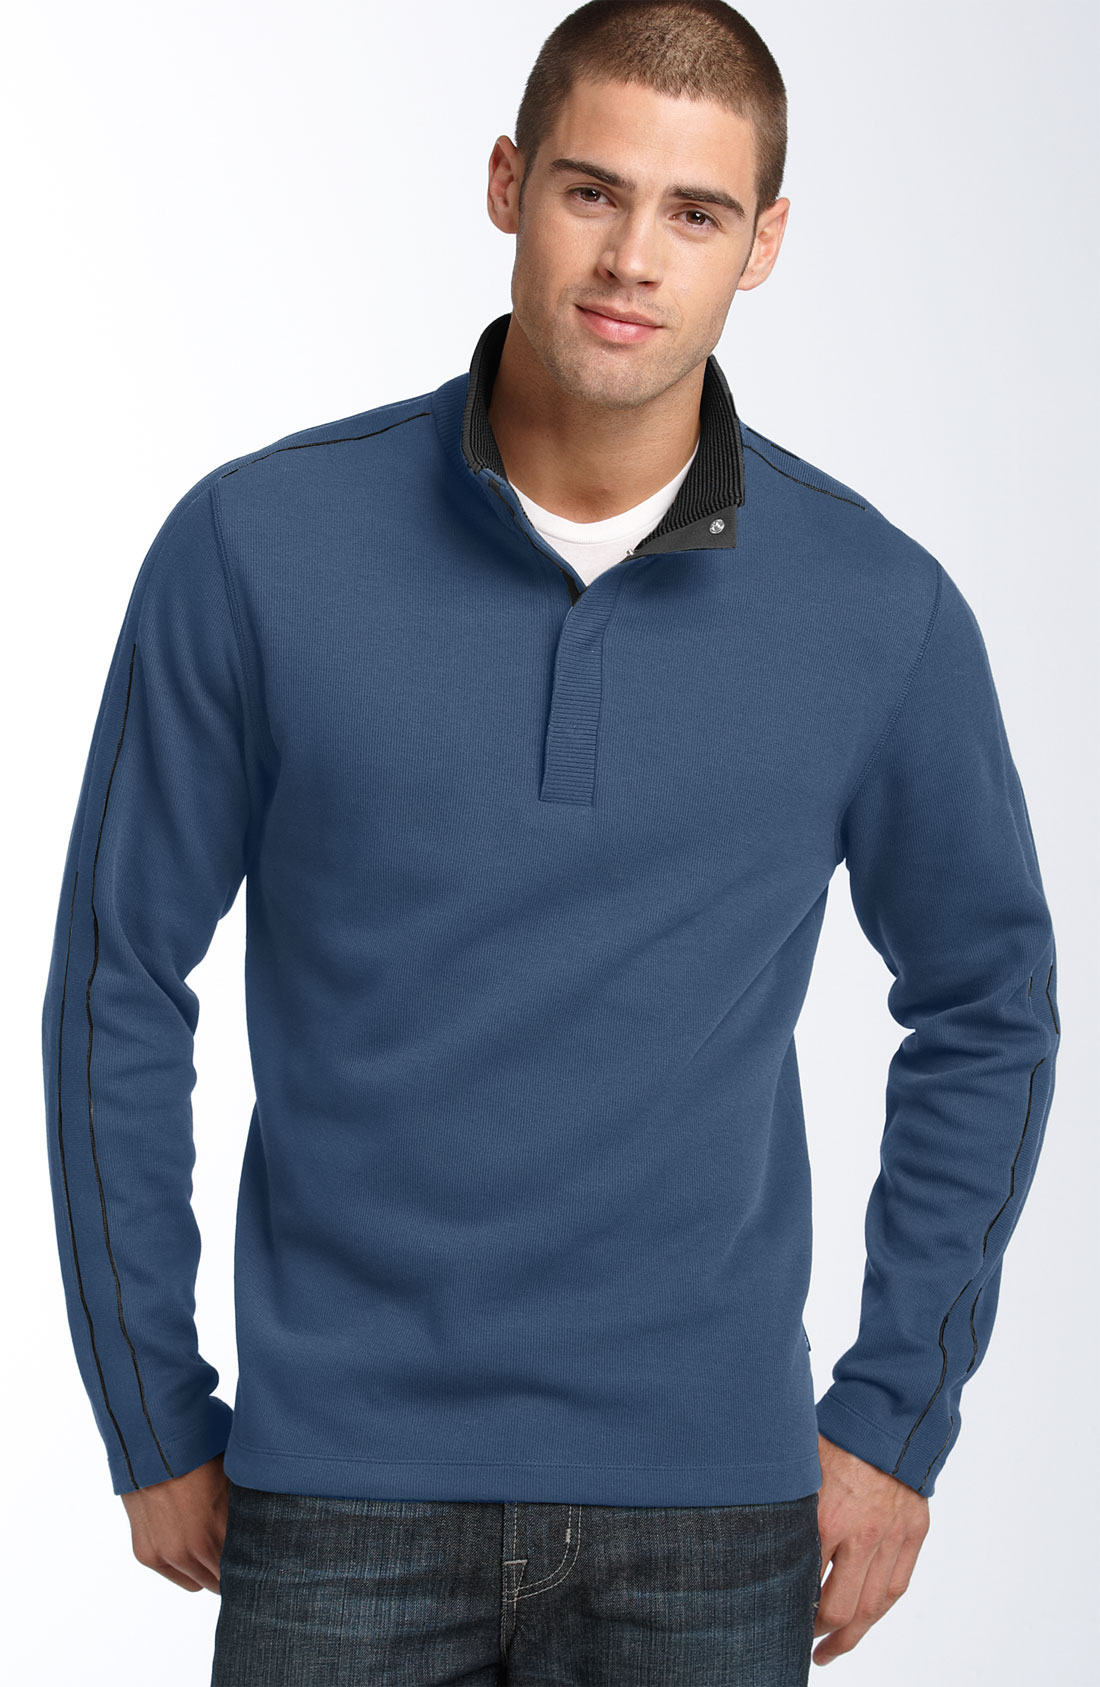 hugo boss boss black piceno cotton knit pullover in blue for men. Black Bedroom Furniture Sets. Home Design Ideas